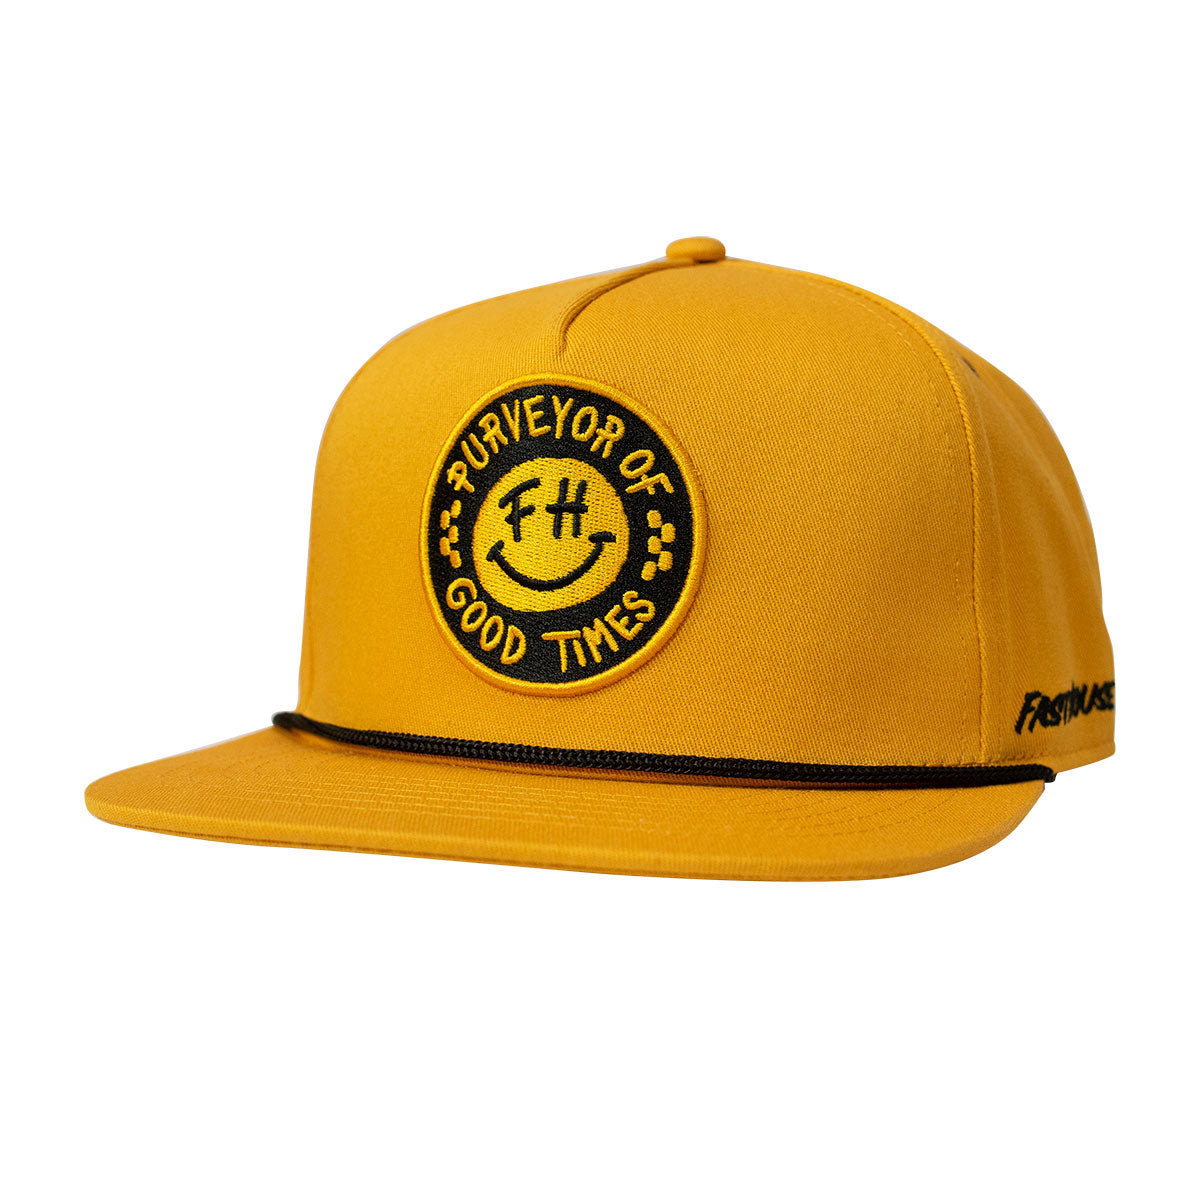 Fasthouse Stanley Hat - Gold